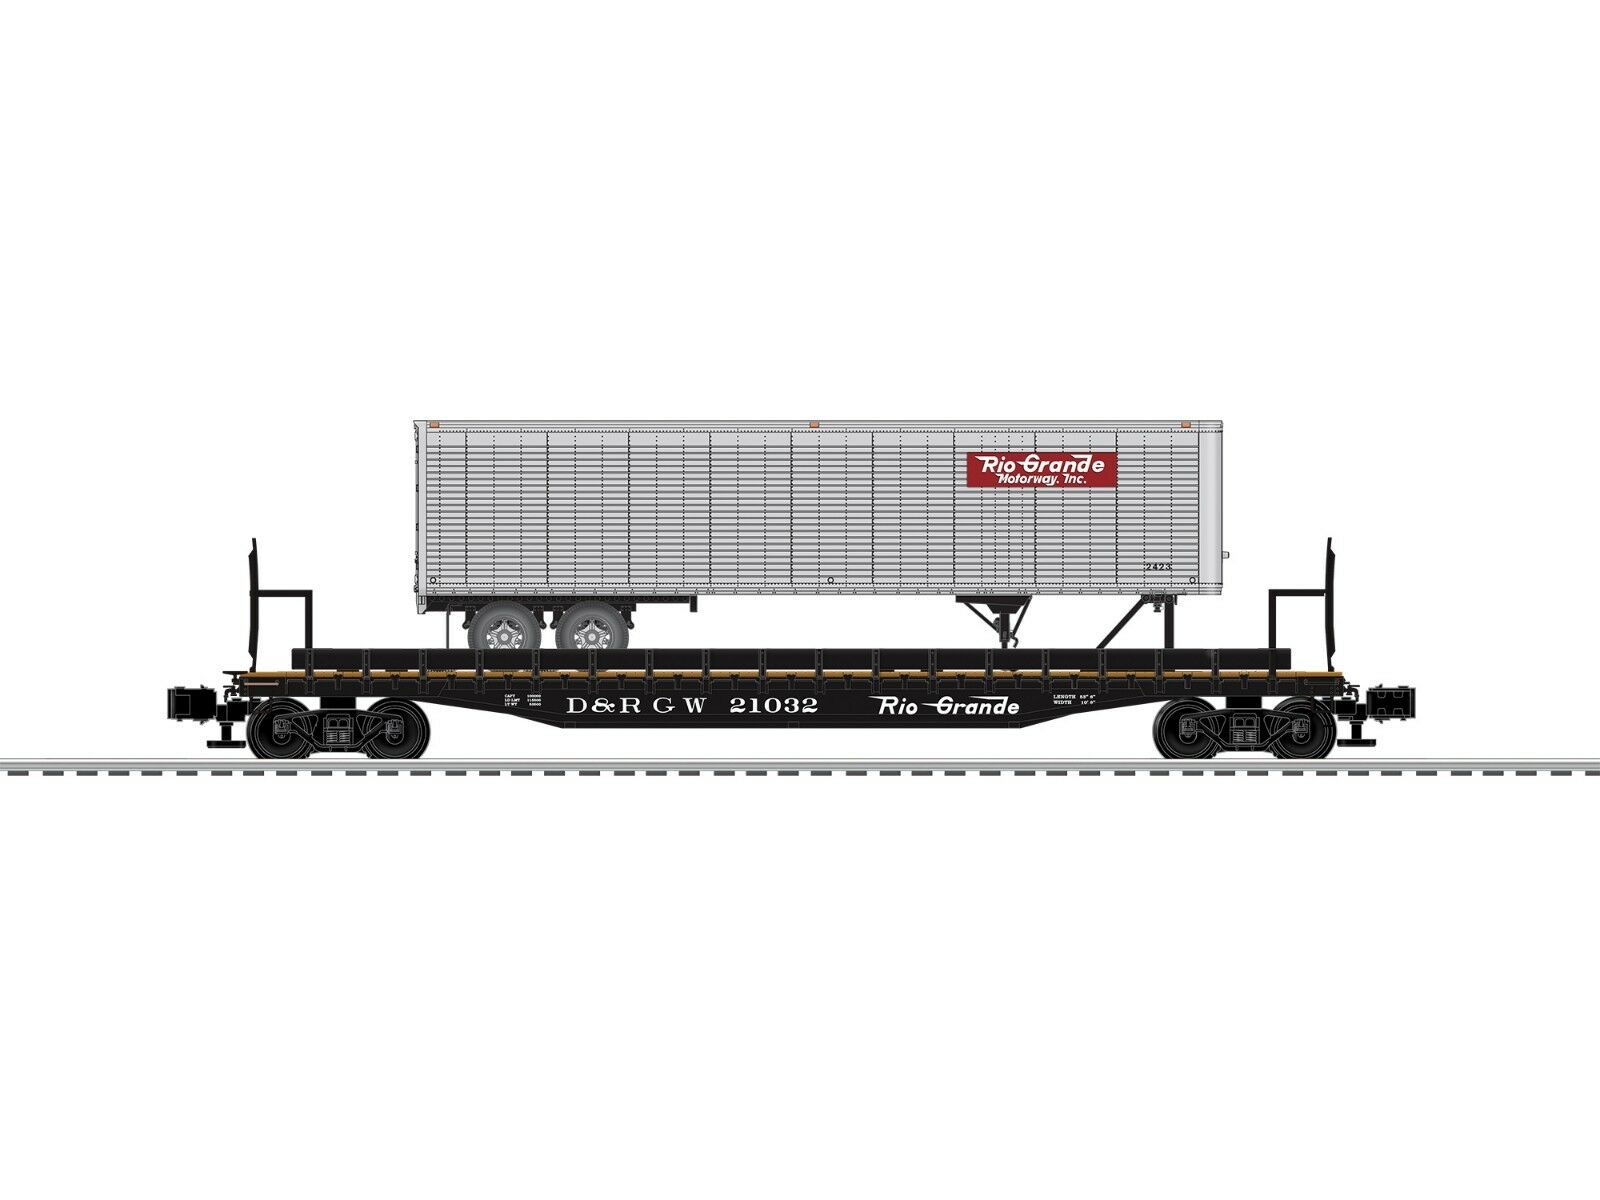 O-Gauge - Lionel - D&RGW PS4  21032 w 40'Trailer